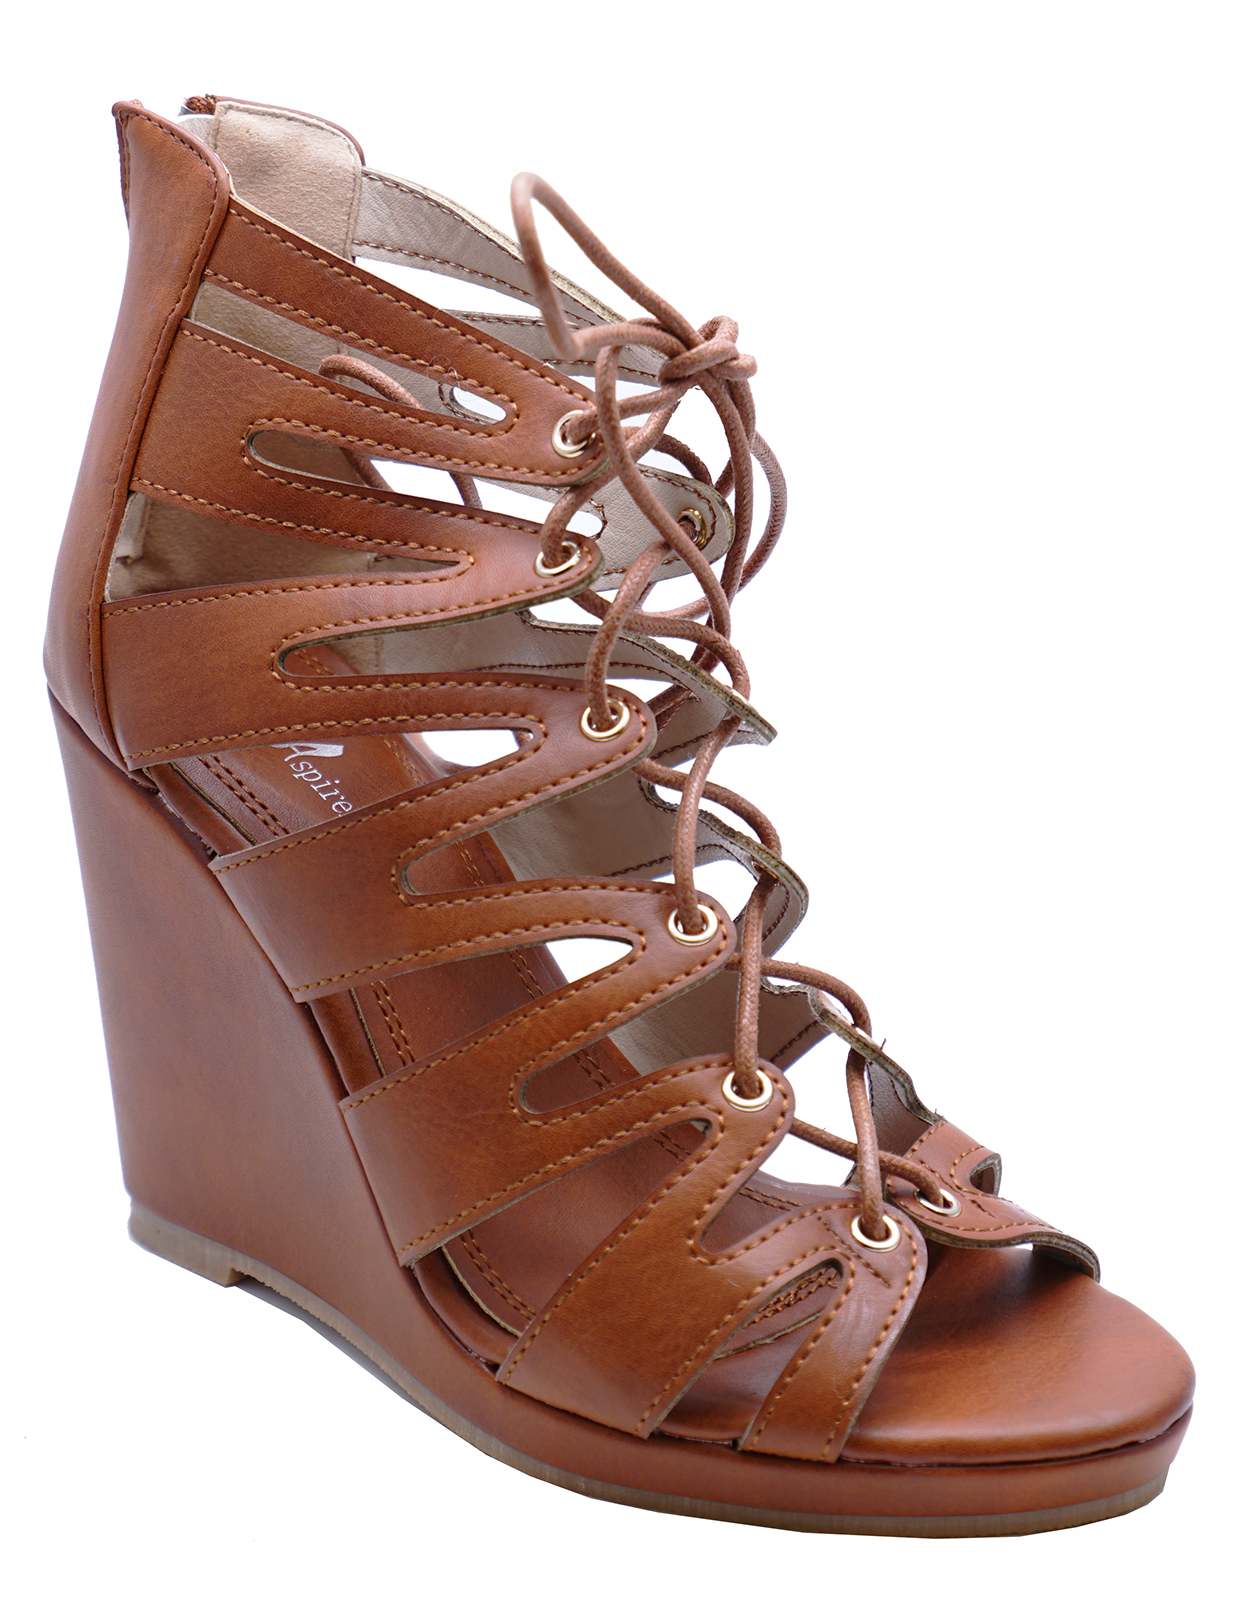 Sentinel WOMENS BROWN LACE-UP SUMMER STRAPPY WEDGES SANDALS OPEN-TOE SHOES  SIZES 3- 93e75e562